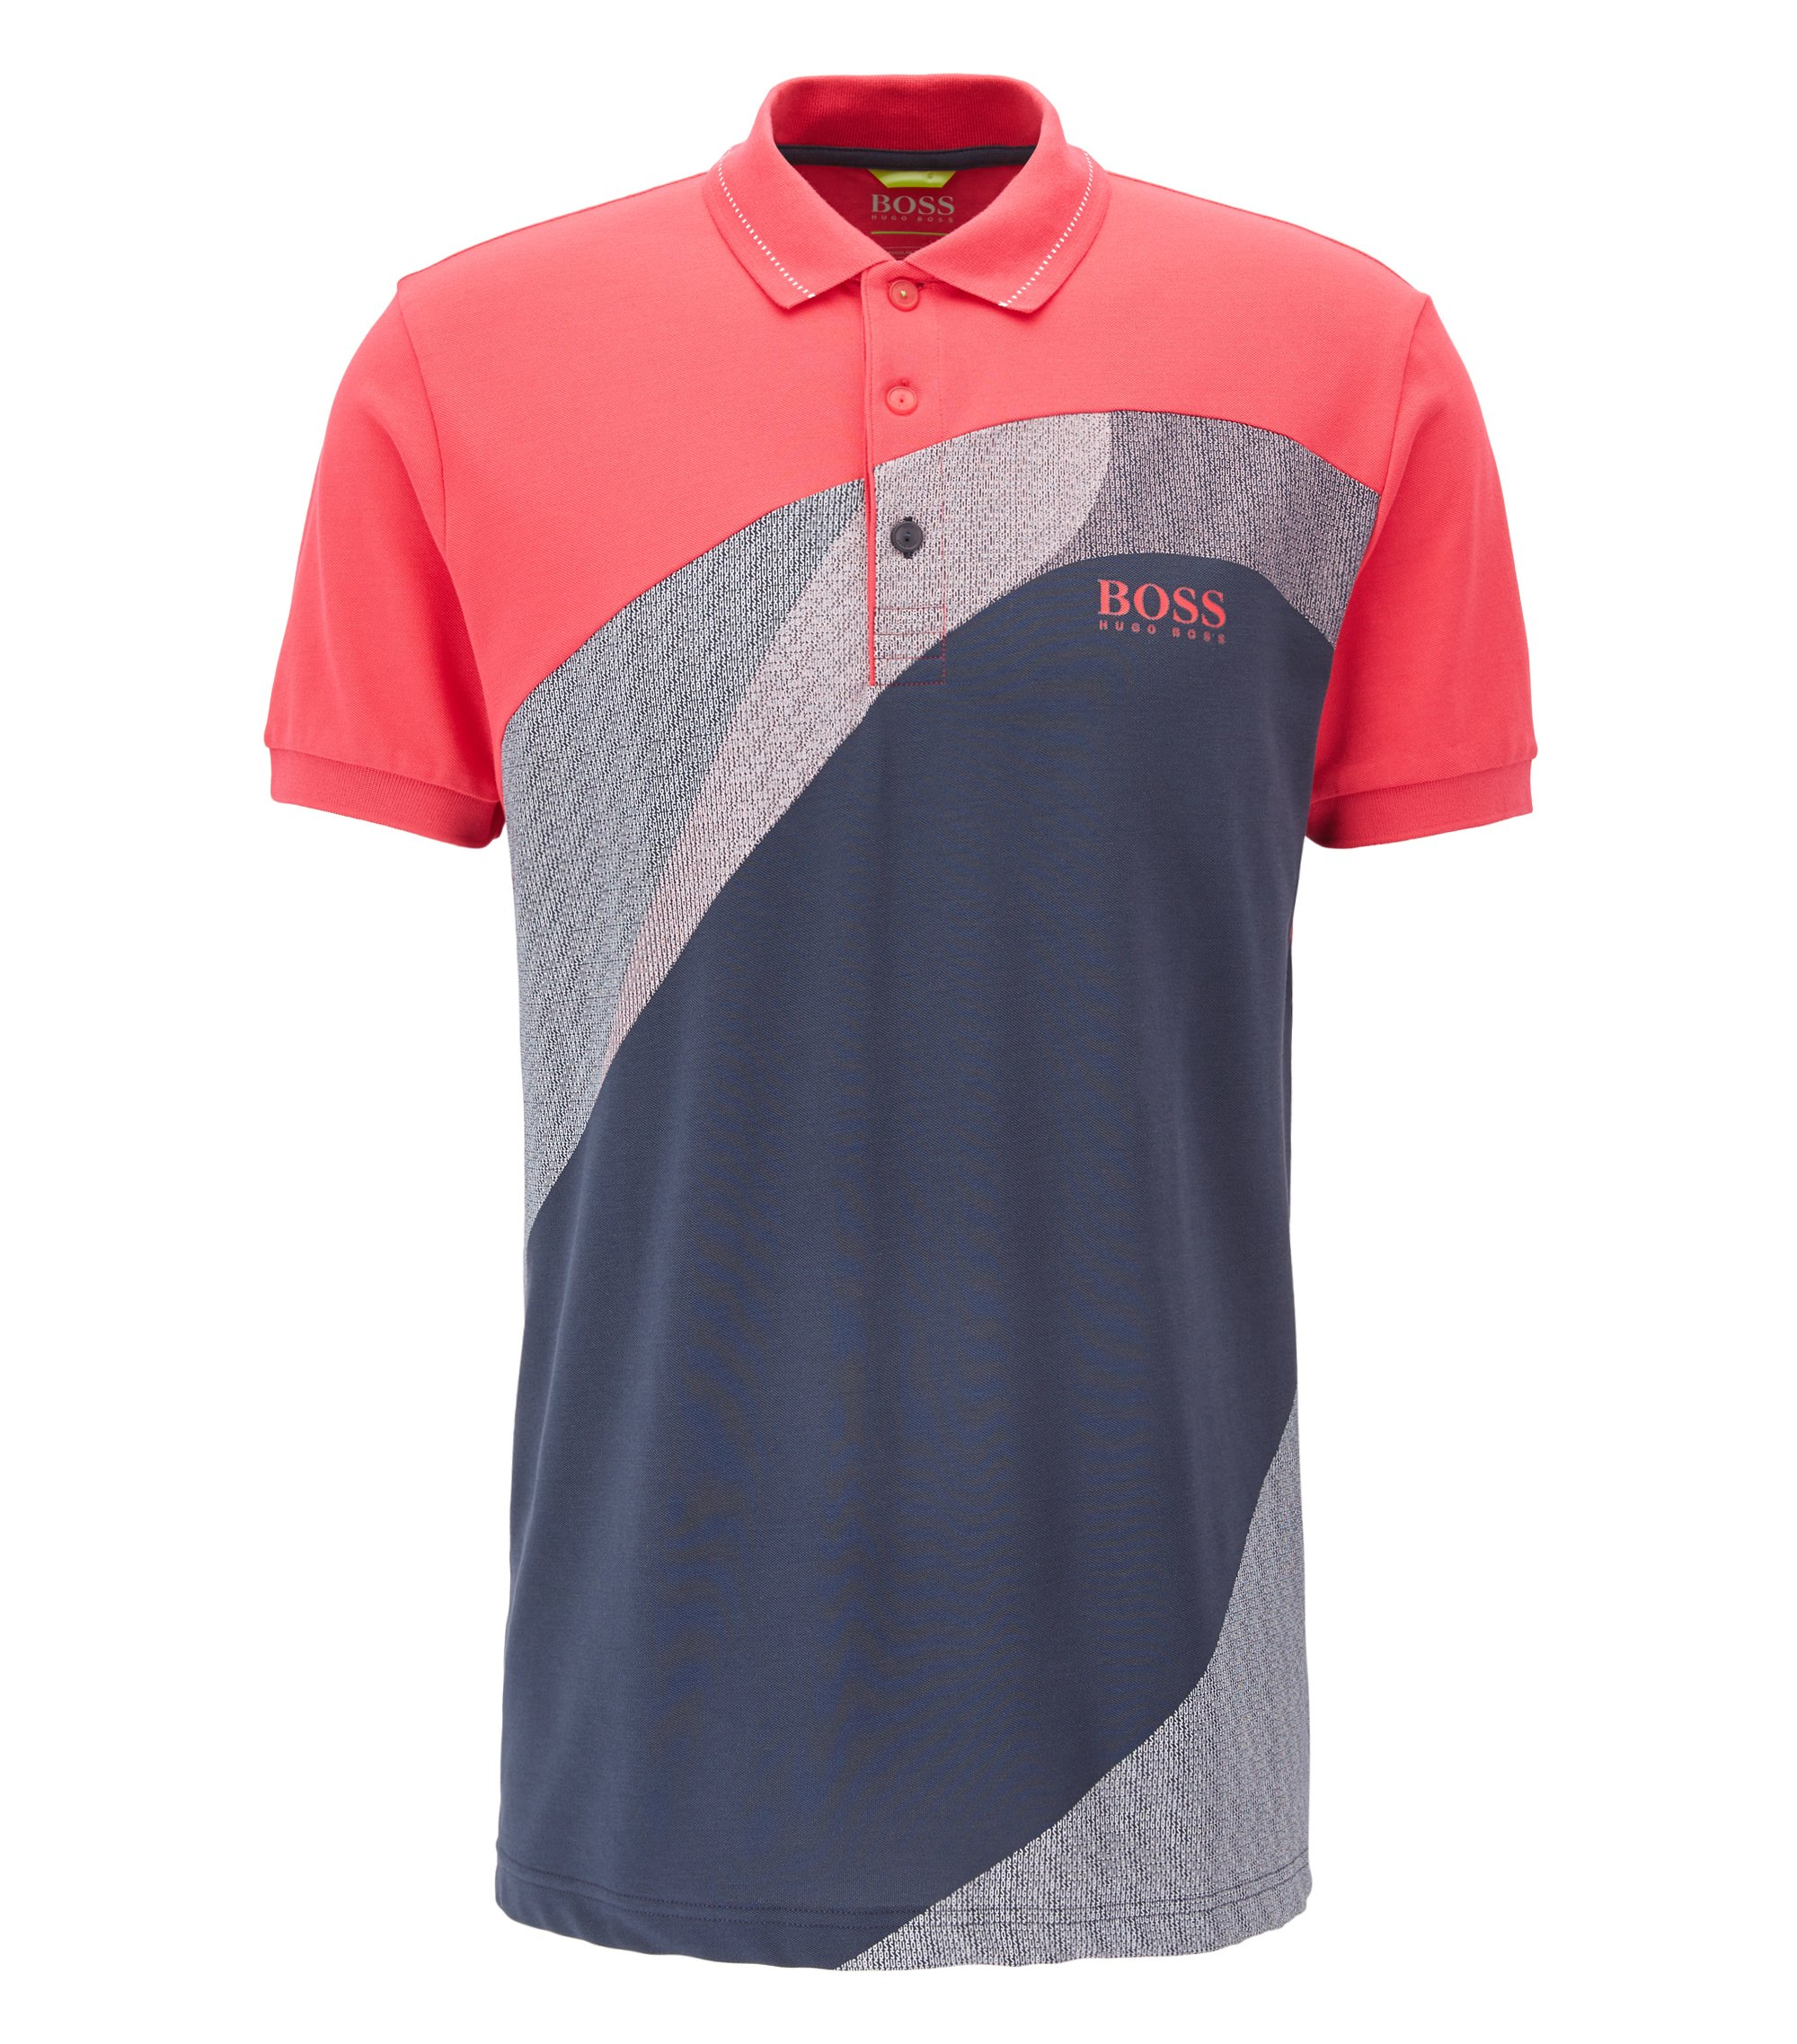 Cotton Blend Polo Shirt, Regular Fit | Paddy Pro, Pink